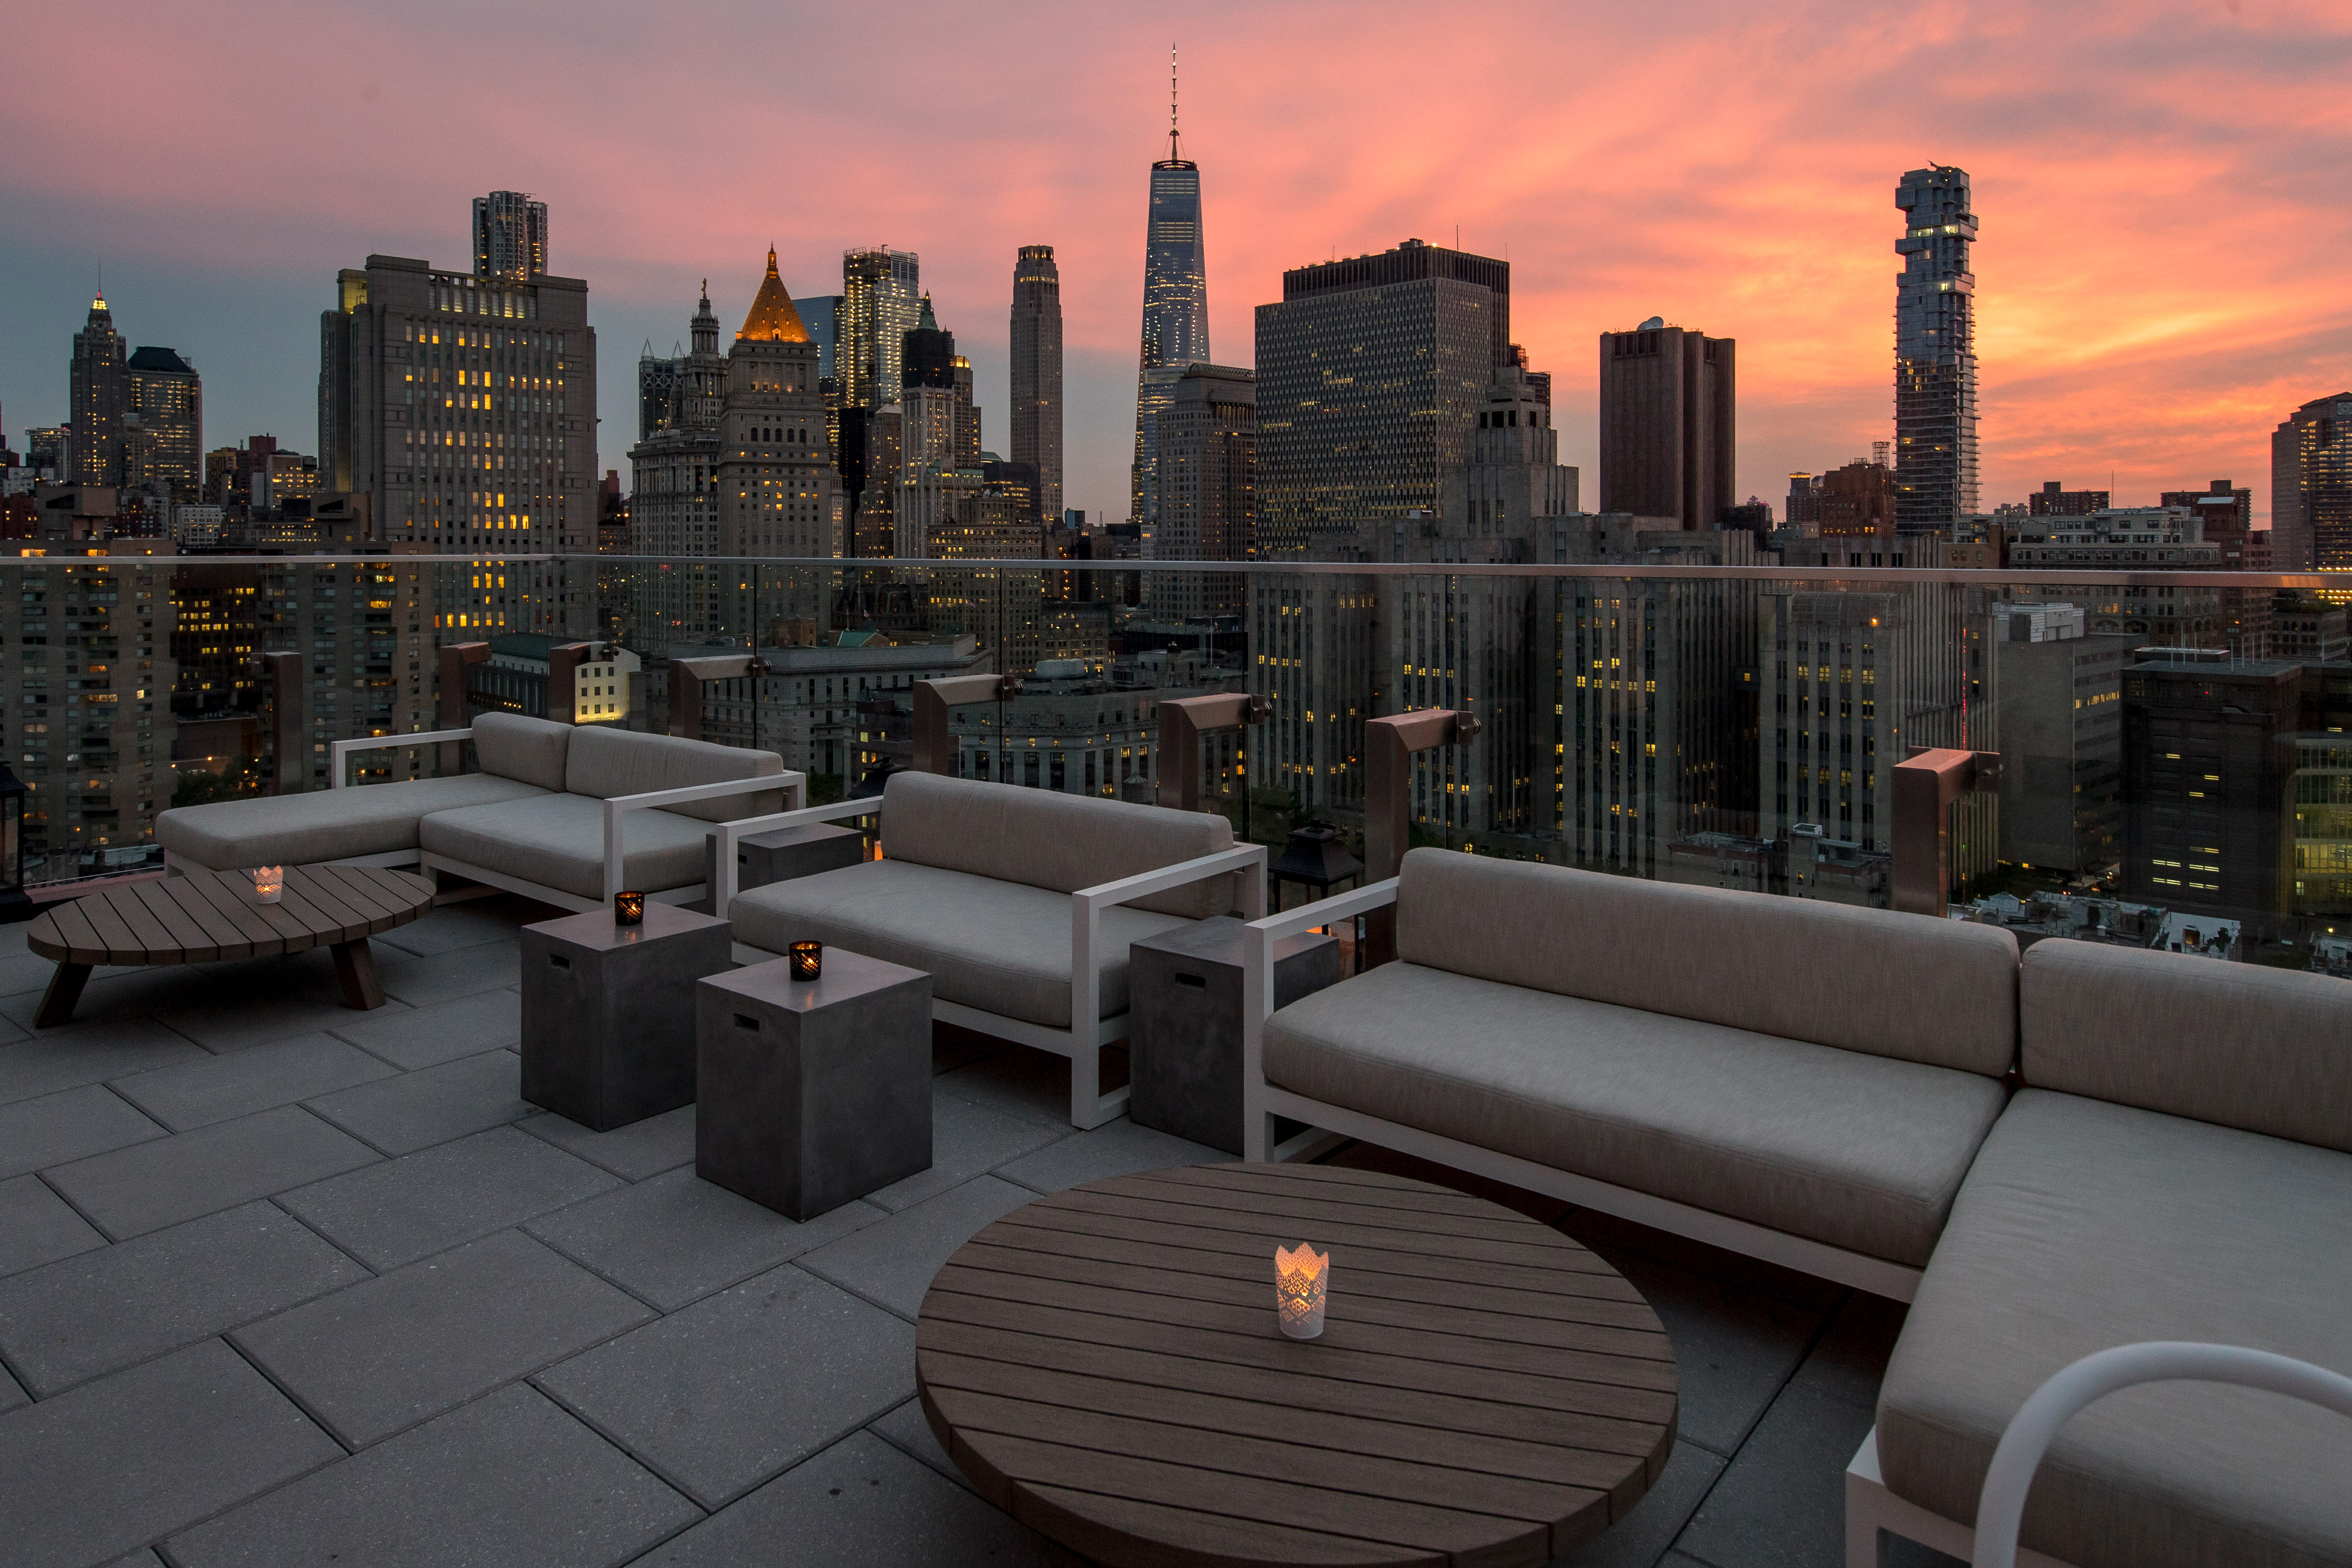 Restaurant Furniture Bowery Nyc : Dale talde s new chinatown rooftop bar has an incredible